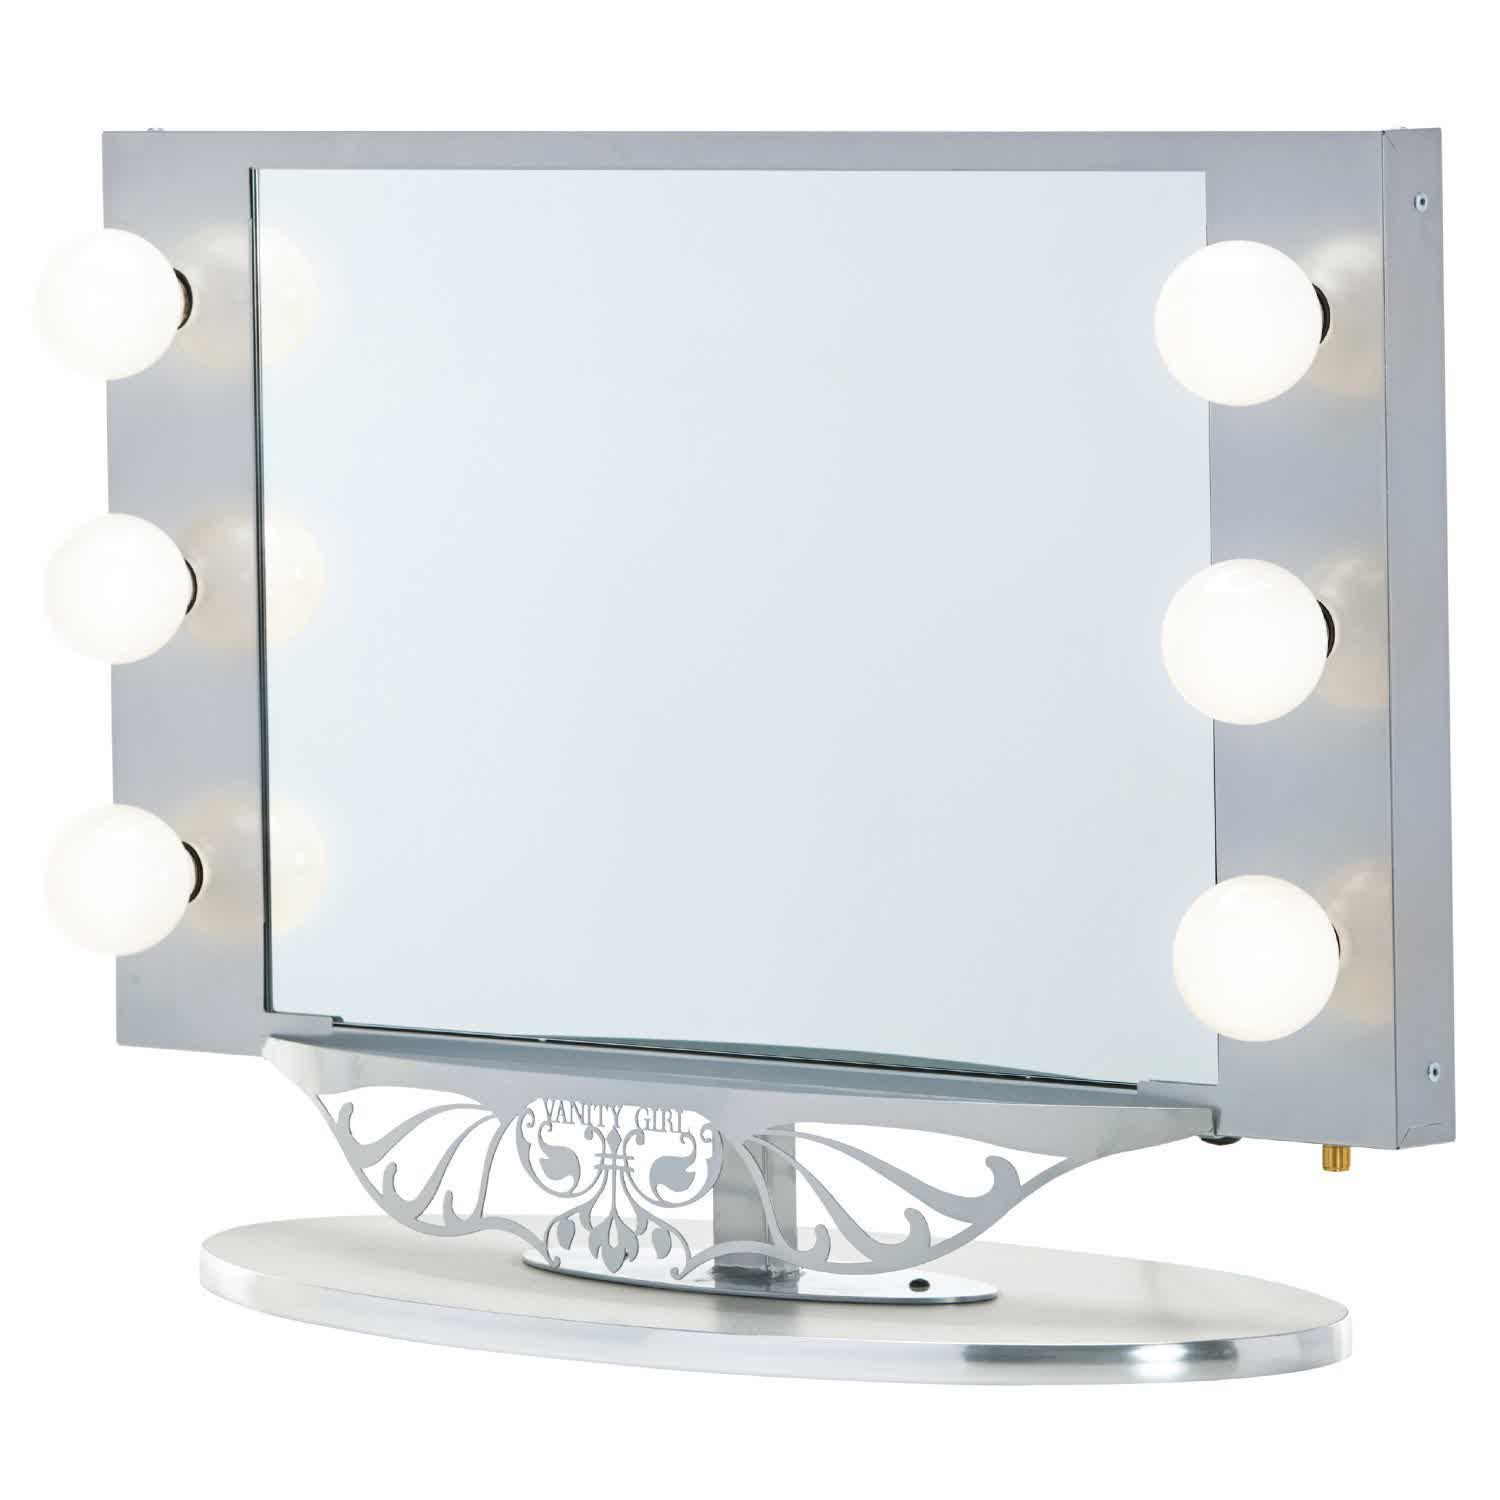 vanity girl hollywood starlet lighted vanity mirror silver 34 x 23. Black Bedroom Furniture Sets. Home Design Ideas